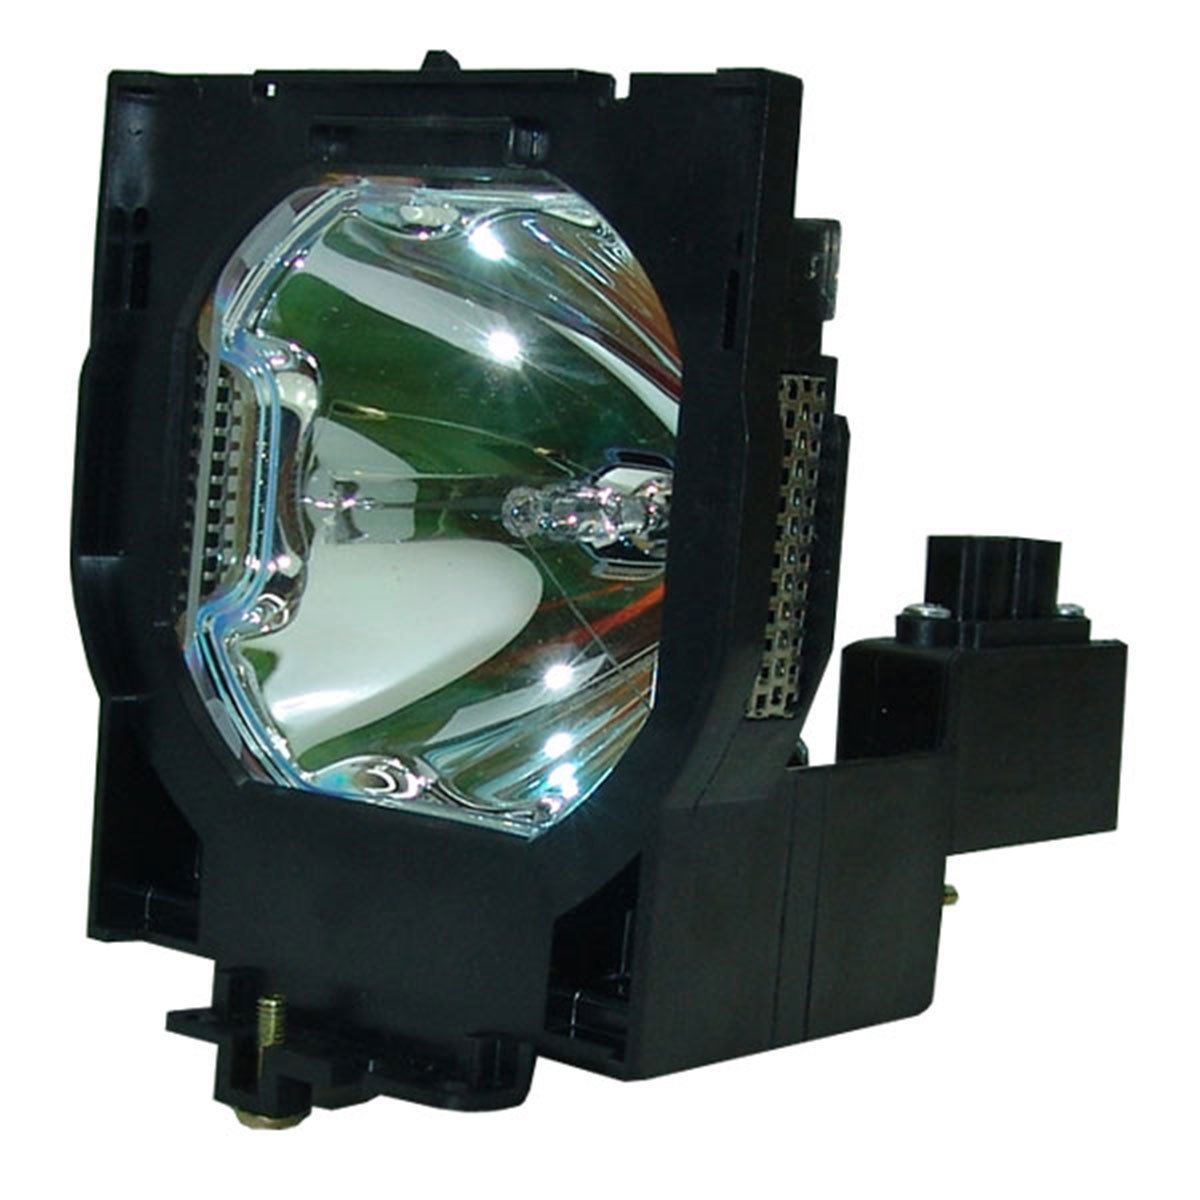 Lutema 03-900472-01P-P01 Christie 03-900472-01P LCD/DLP Projector Lamp (Philips Inside)